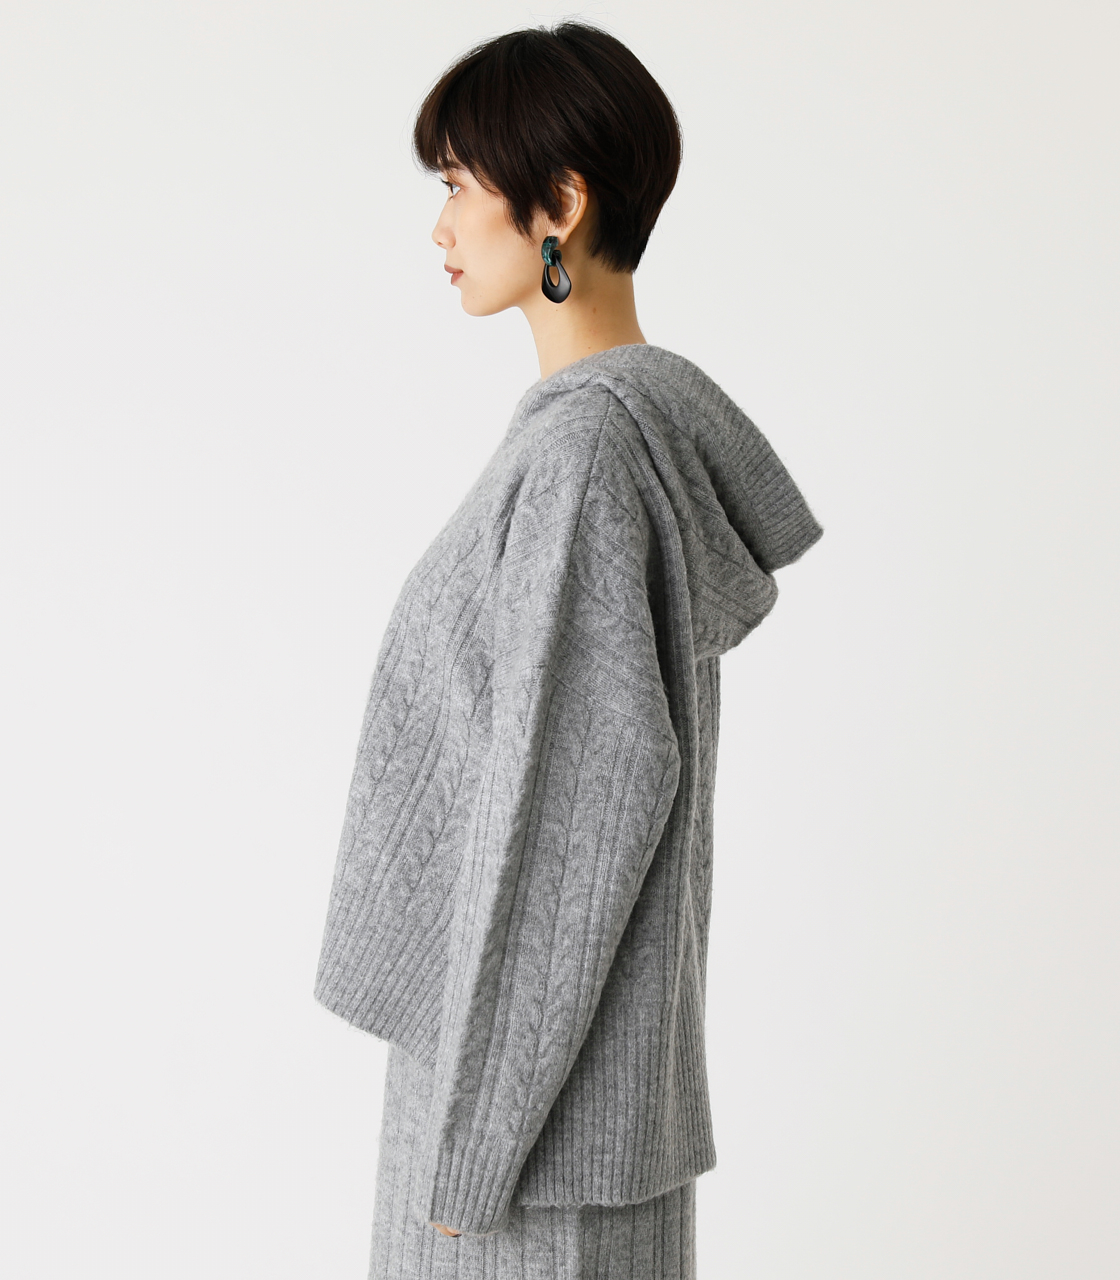 CABLE KNIT HOODIE/ケーブルニットフーディ 詳細画像 T.GRY 5